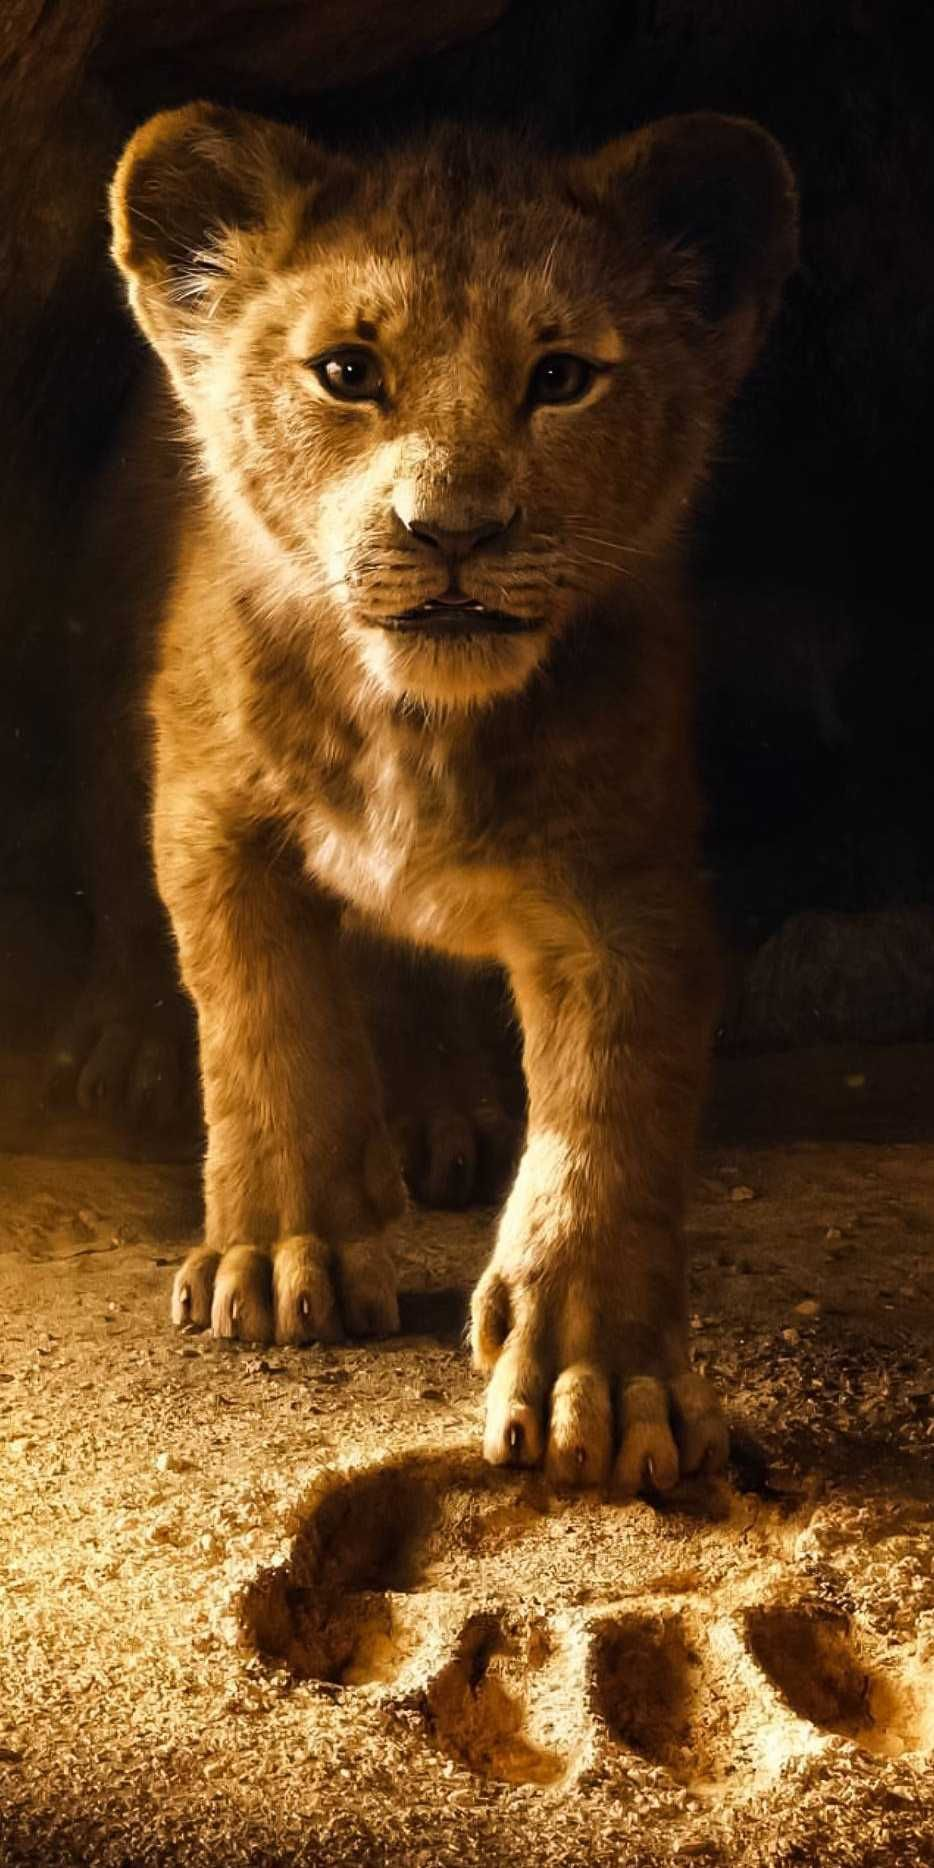 The Lion King Iphone Wallpaper Lion King Movie Lion Pictures